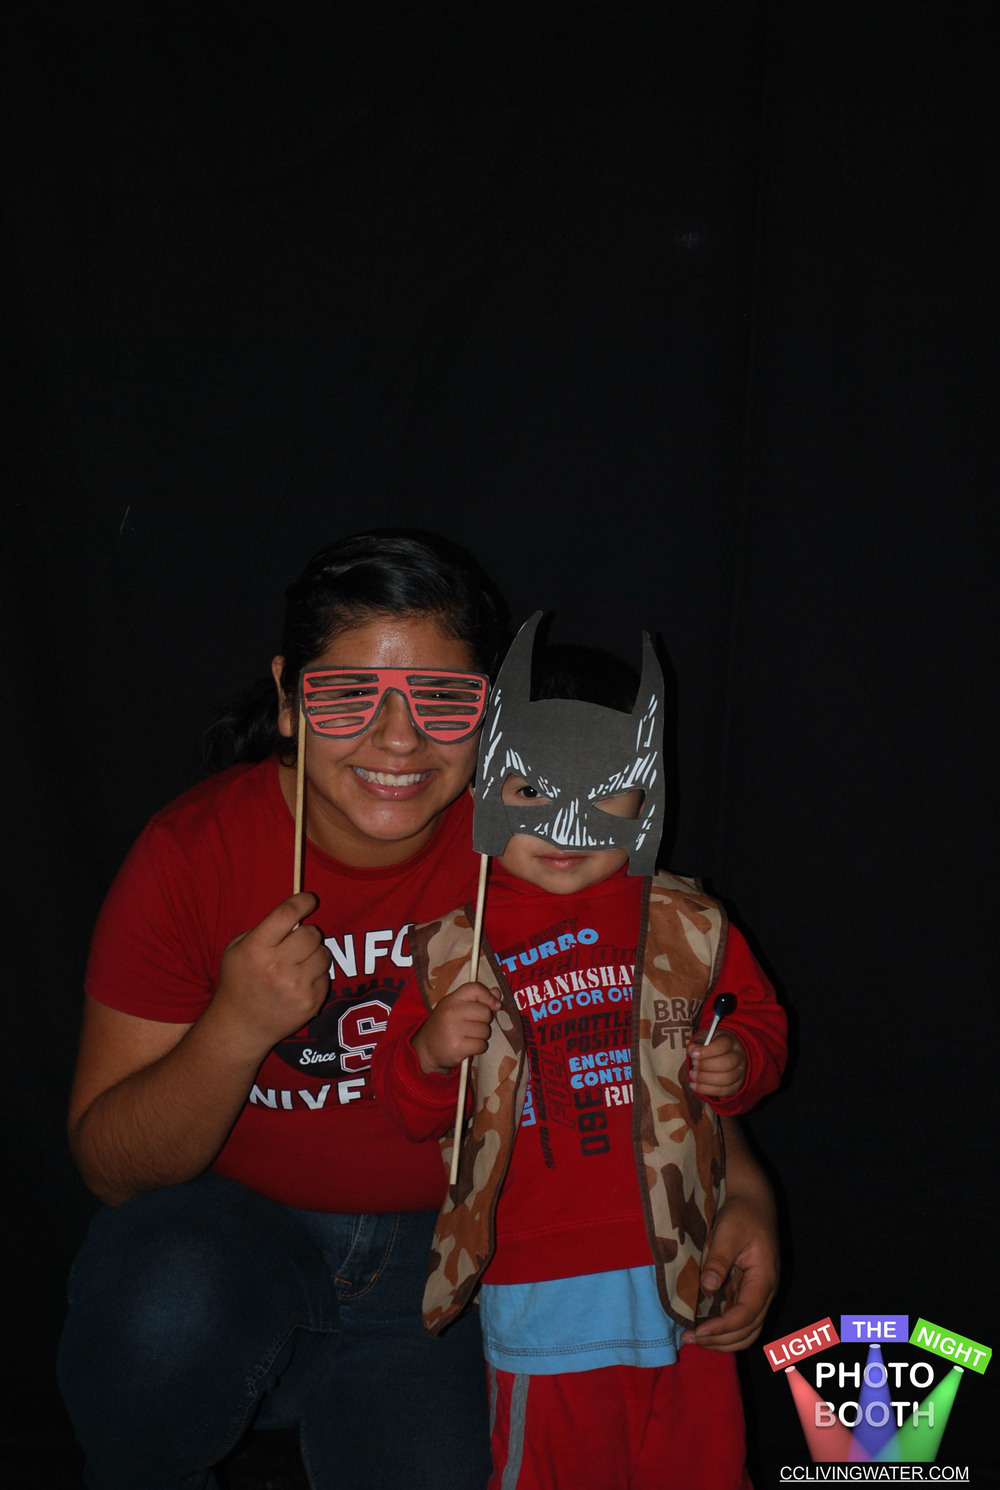 2014-10 - Light The Night Photo Booth (274) copy.jpg